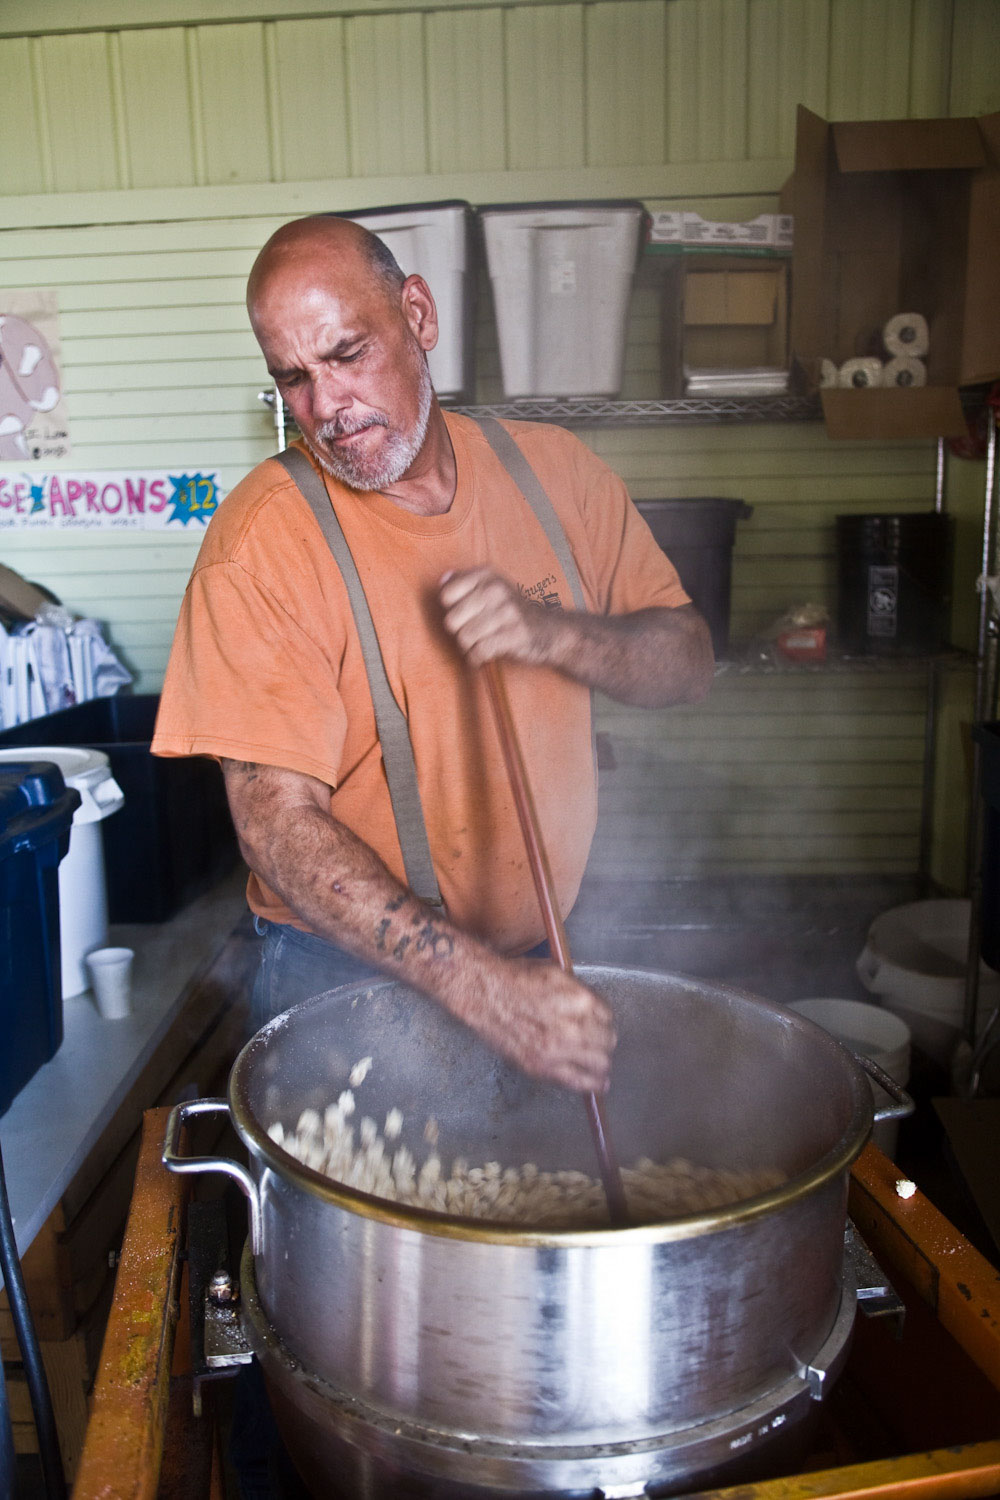 Gary Abraham, owner of the Rolling Donut, making kettle corn at Kruger's Farm in Oregon.